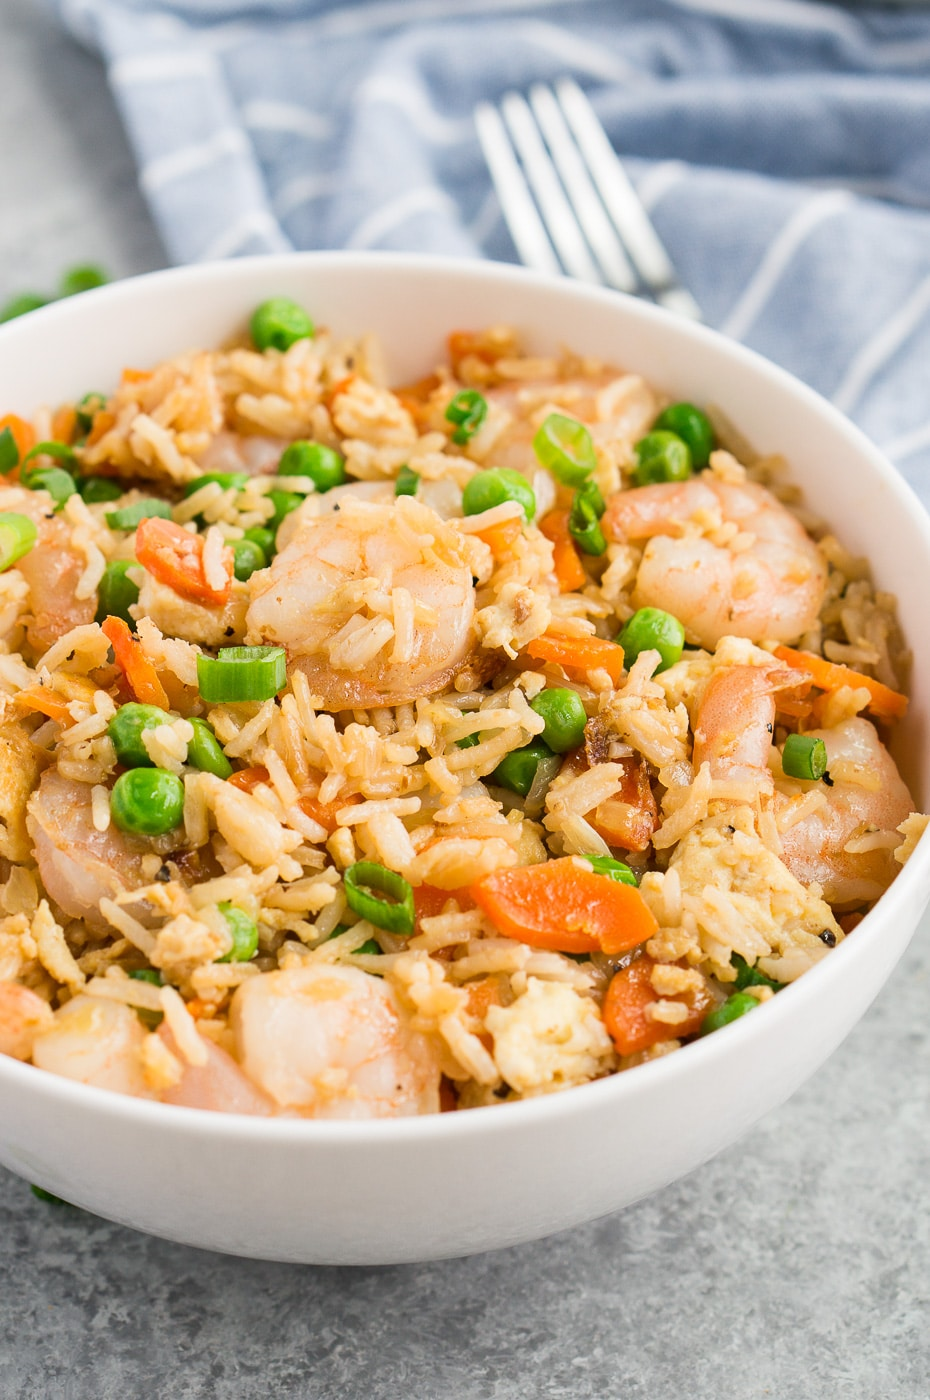 prawns fried rice in a white bowl